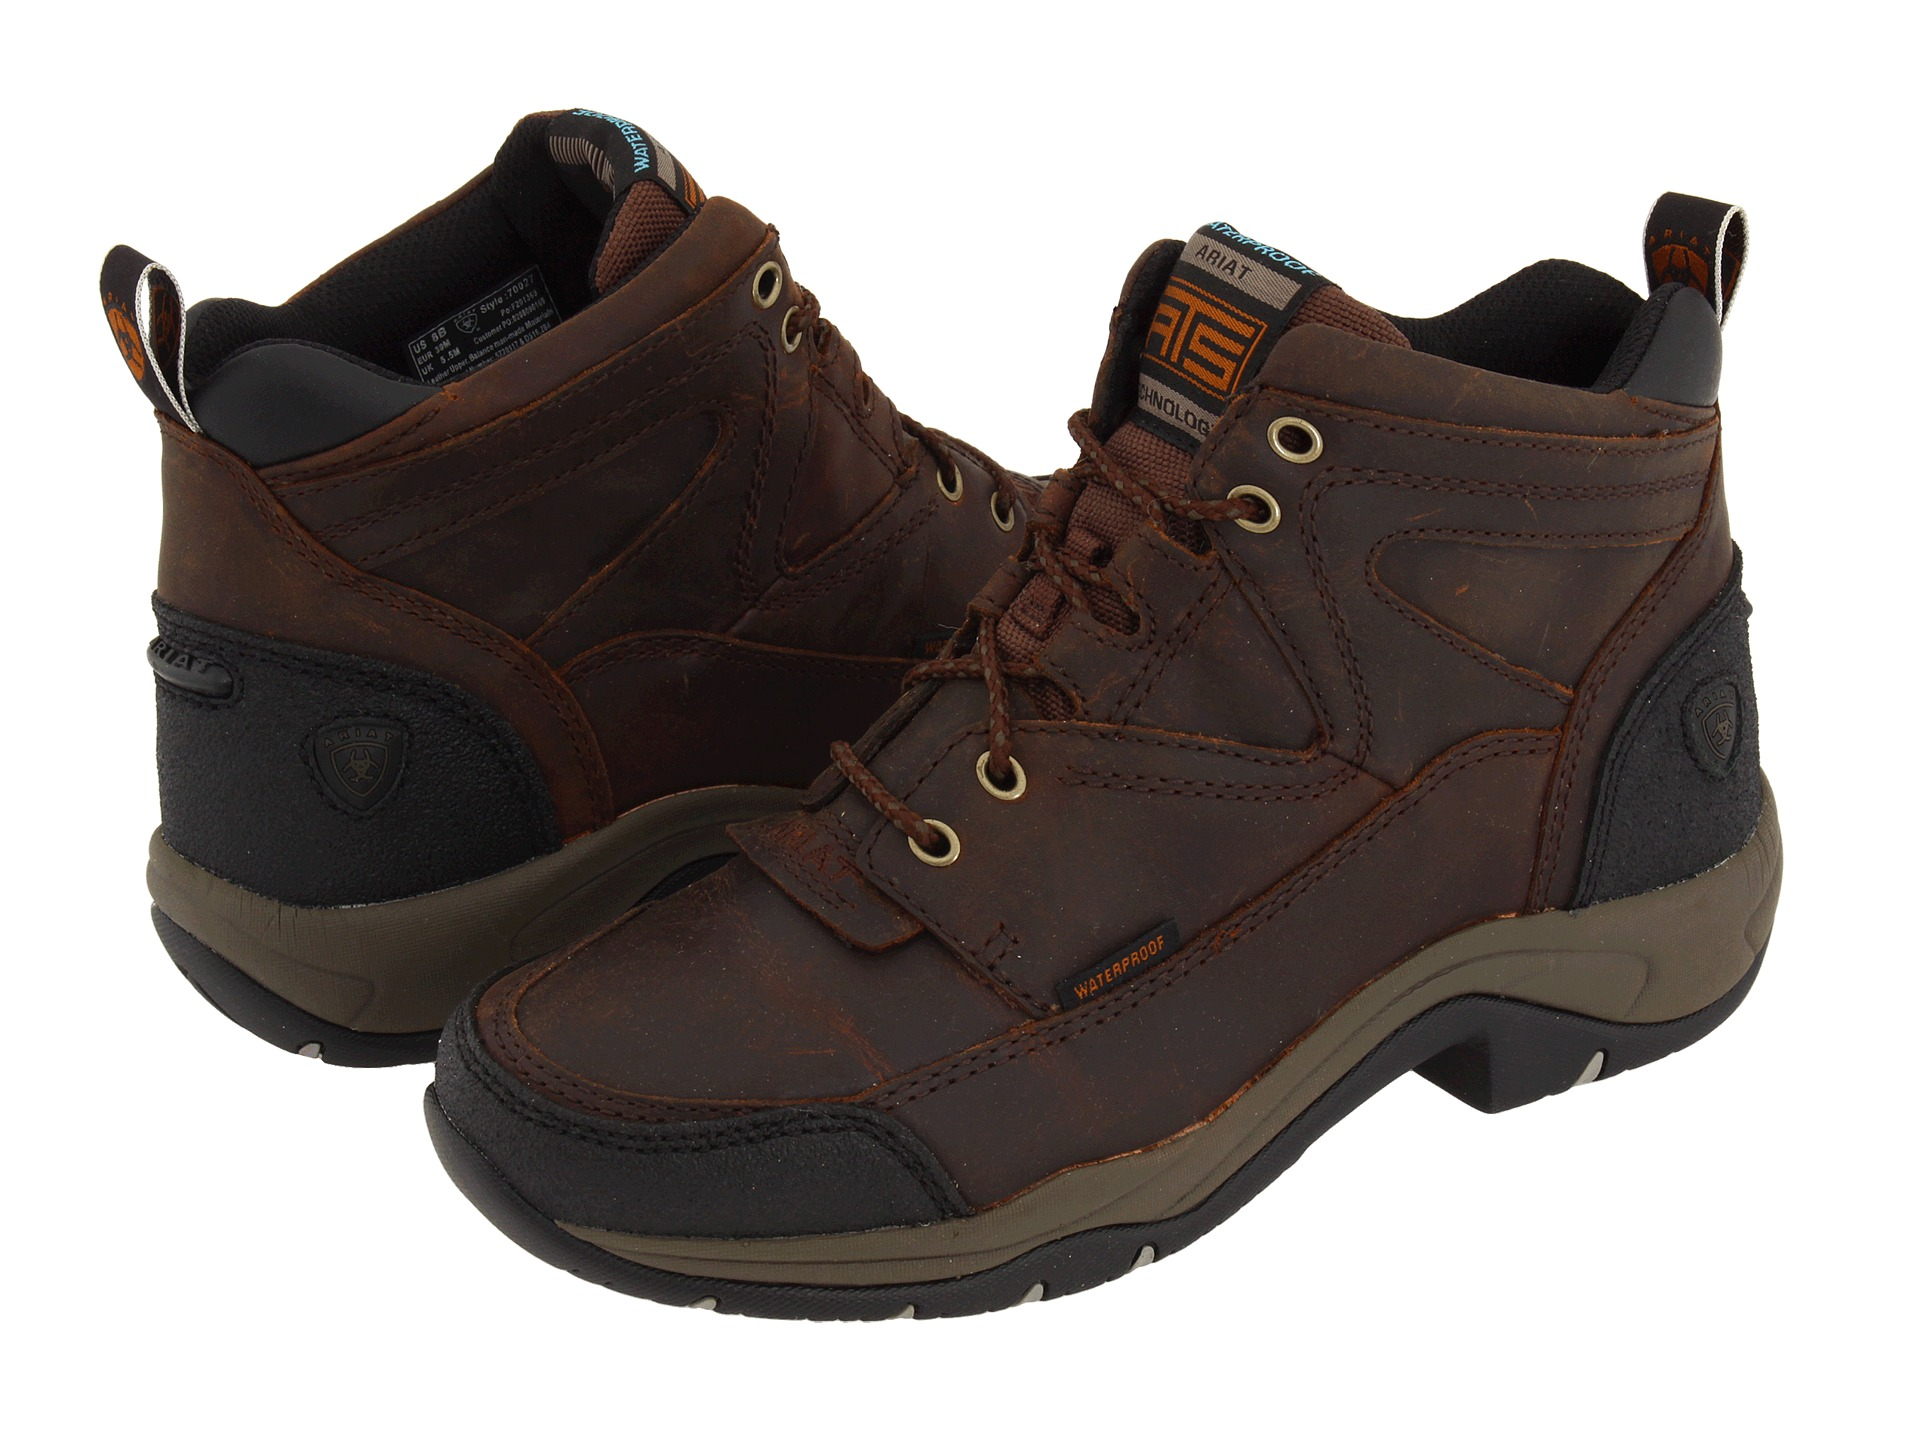 Ariat Terrain H2O - Zappos.com Free Shipping BOTH Ways